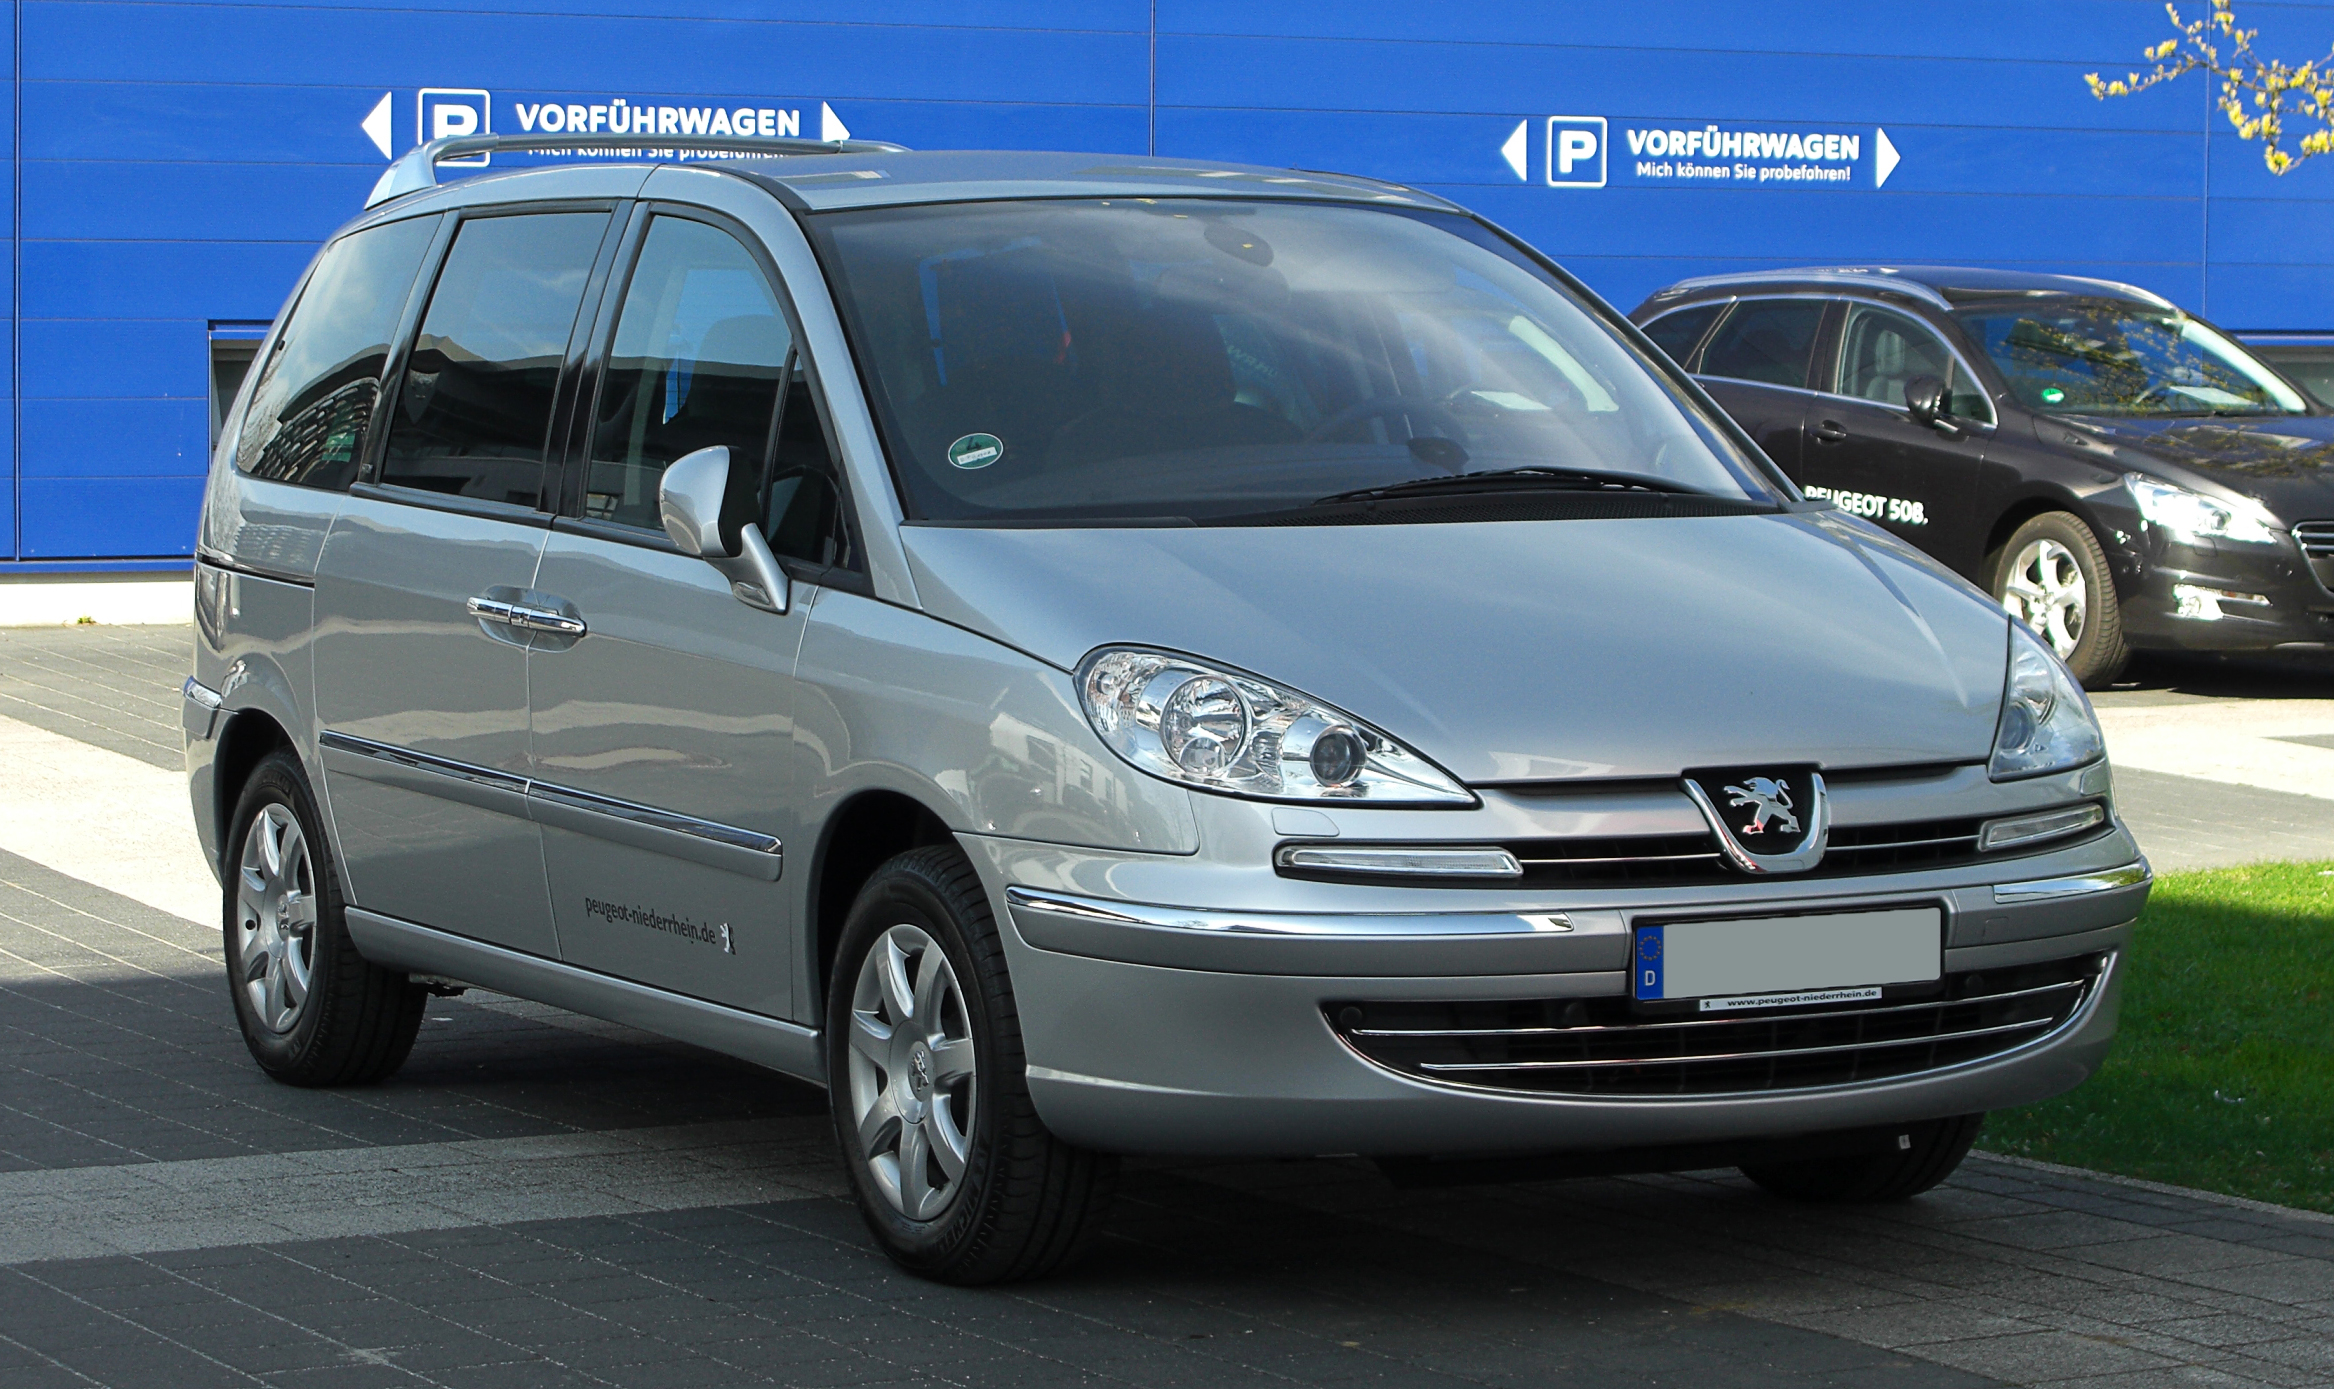 2004 peugeot 807 pictures information and specs auto. Black Bedroom Furniture Sets. Home Design Ideas